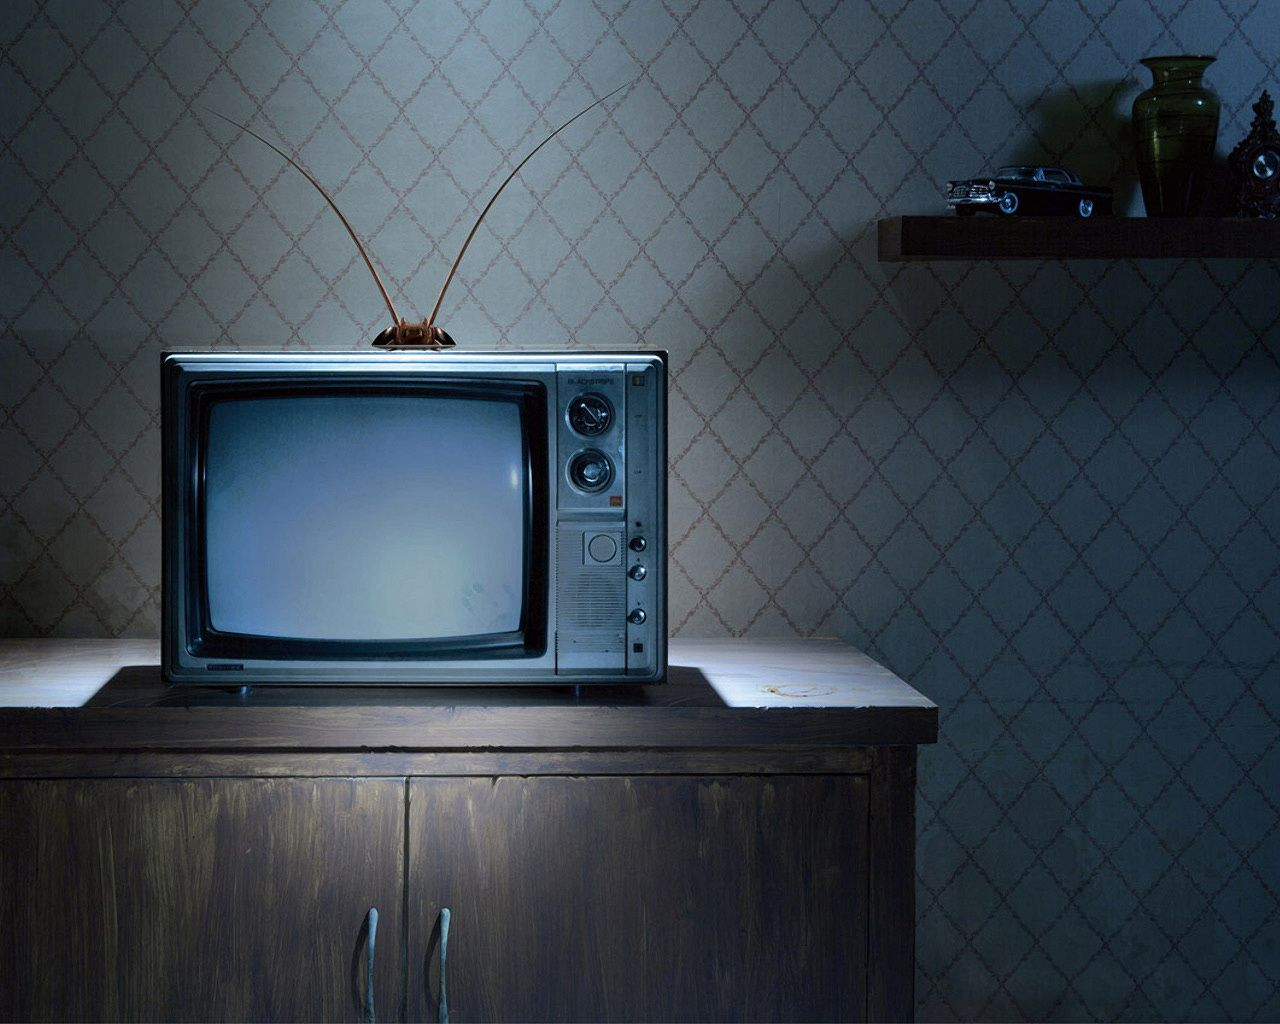 1280x1024 Bug on Vintage TV Wallpaper (9687) - Wallpaperesque